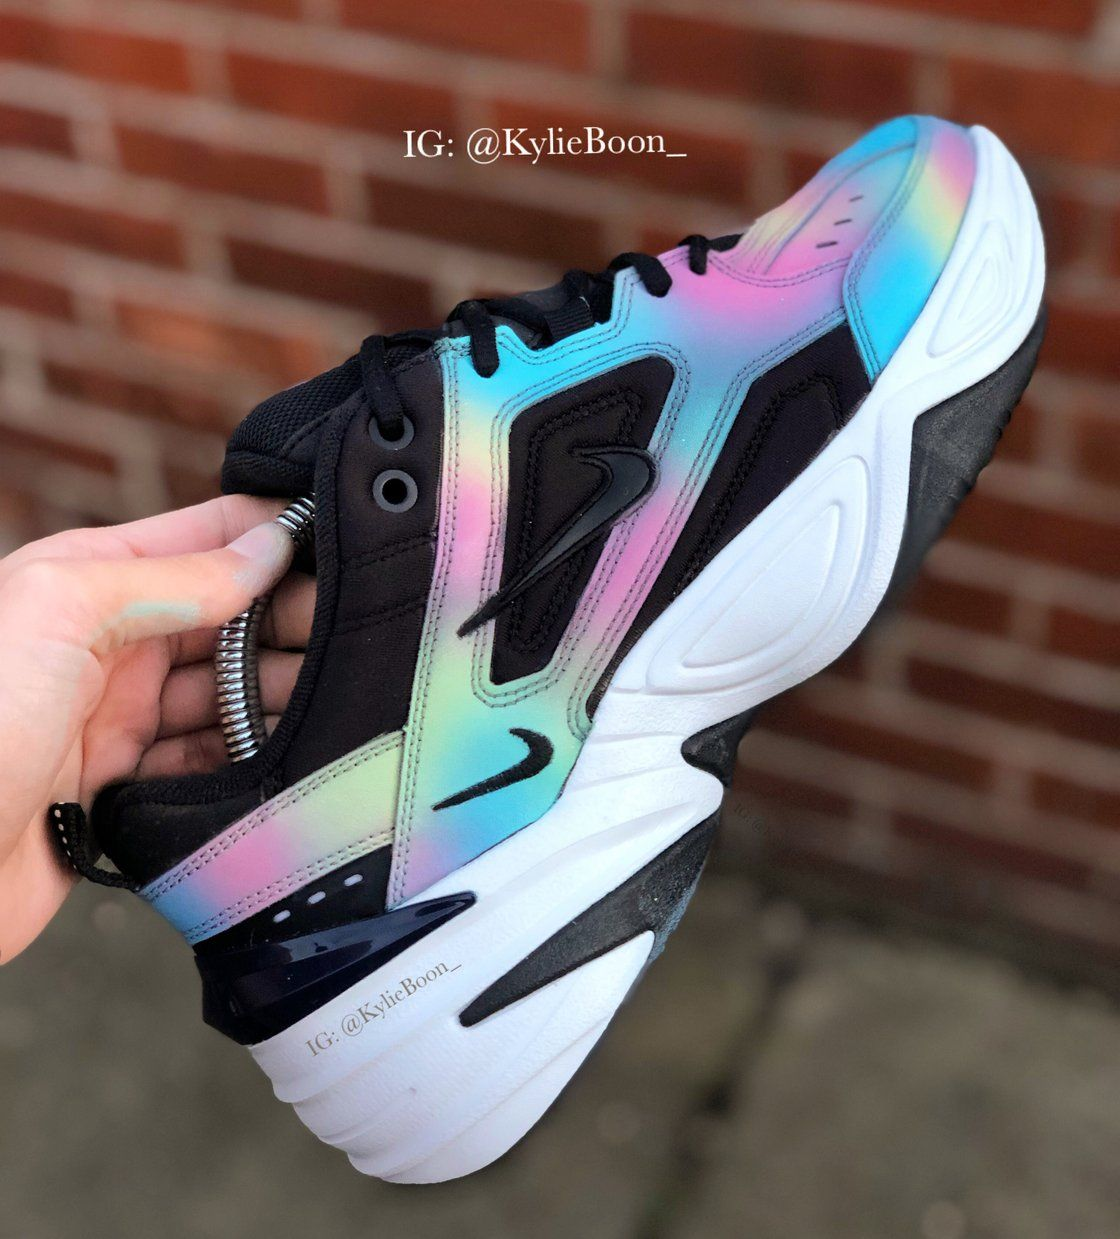 0768a0873 Oil Spill Nike M2K Tekno | KYLIE BOON | sporty schoes v roku 2019